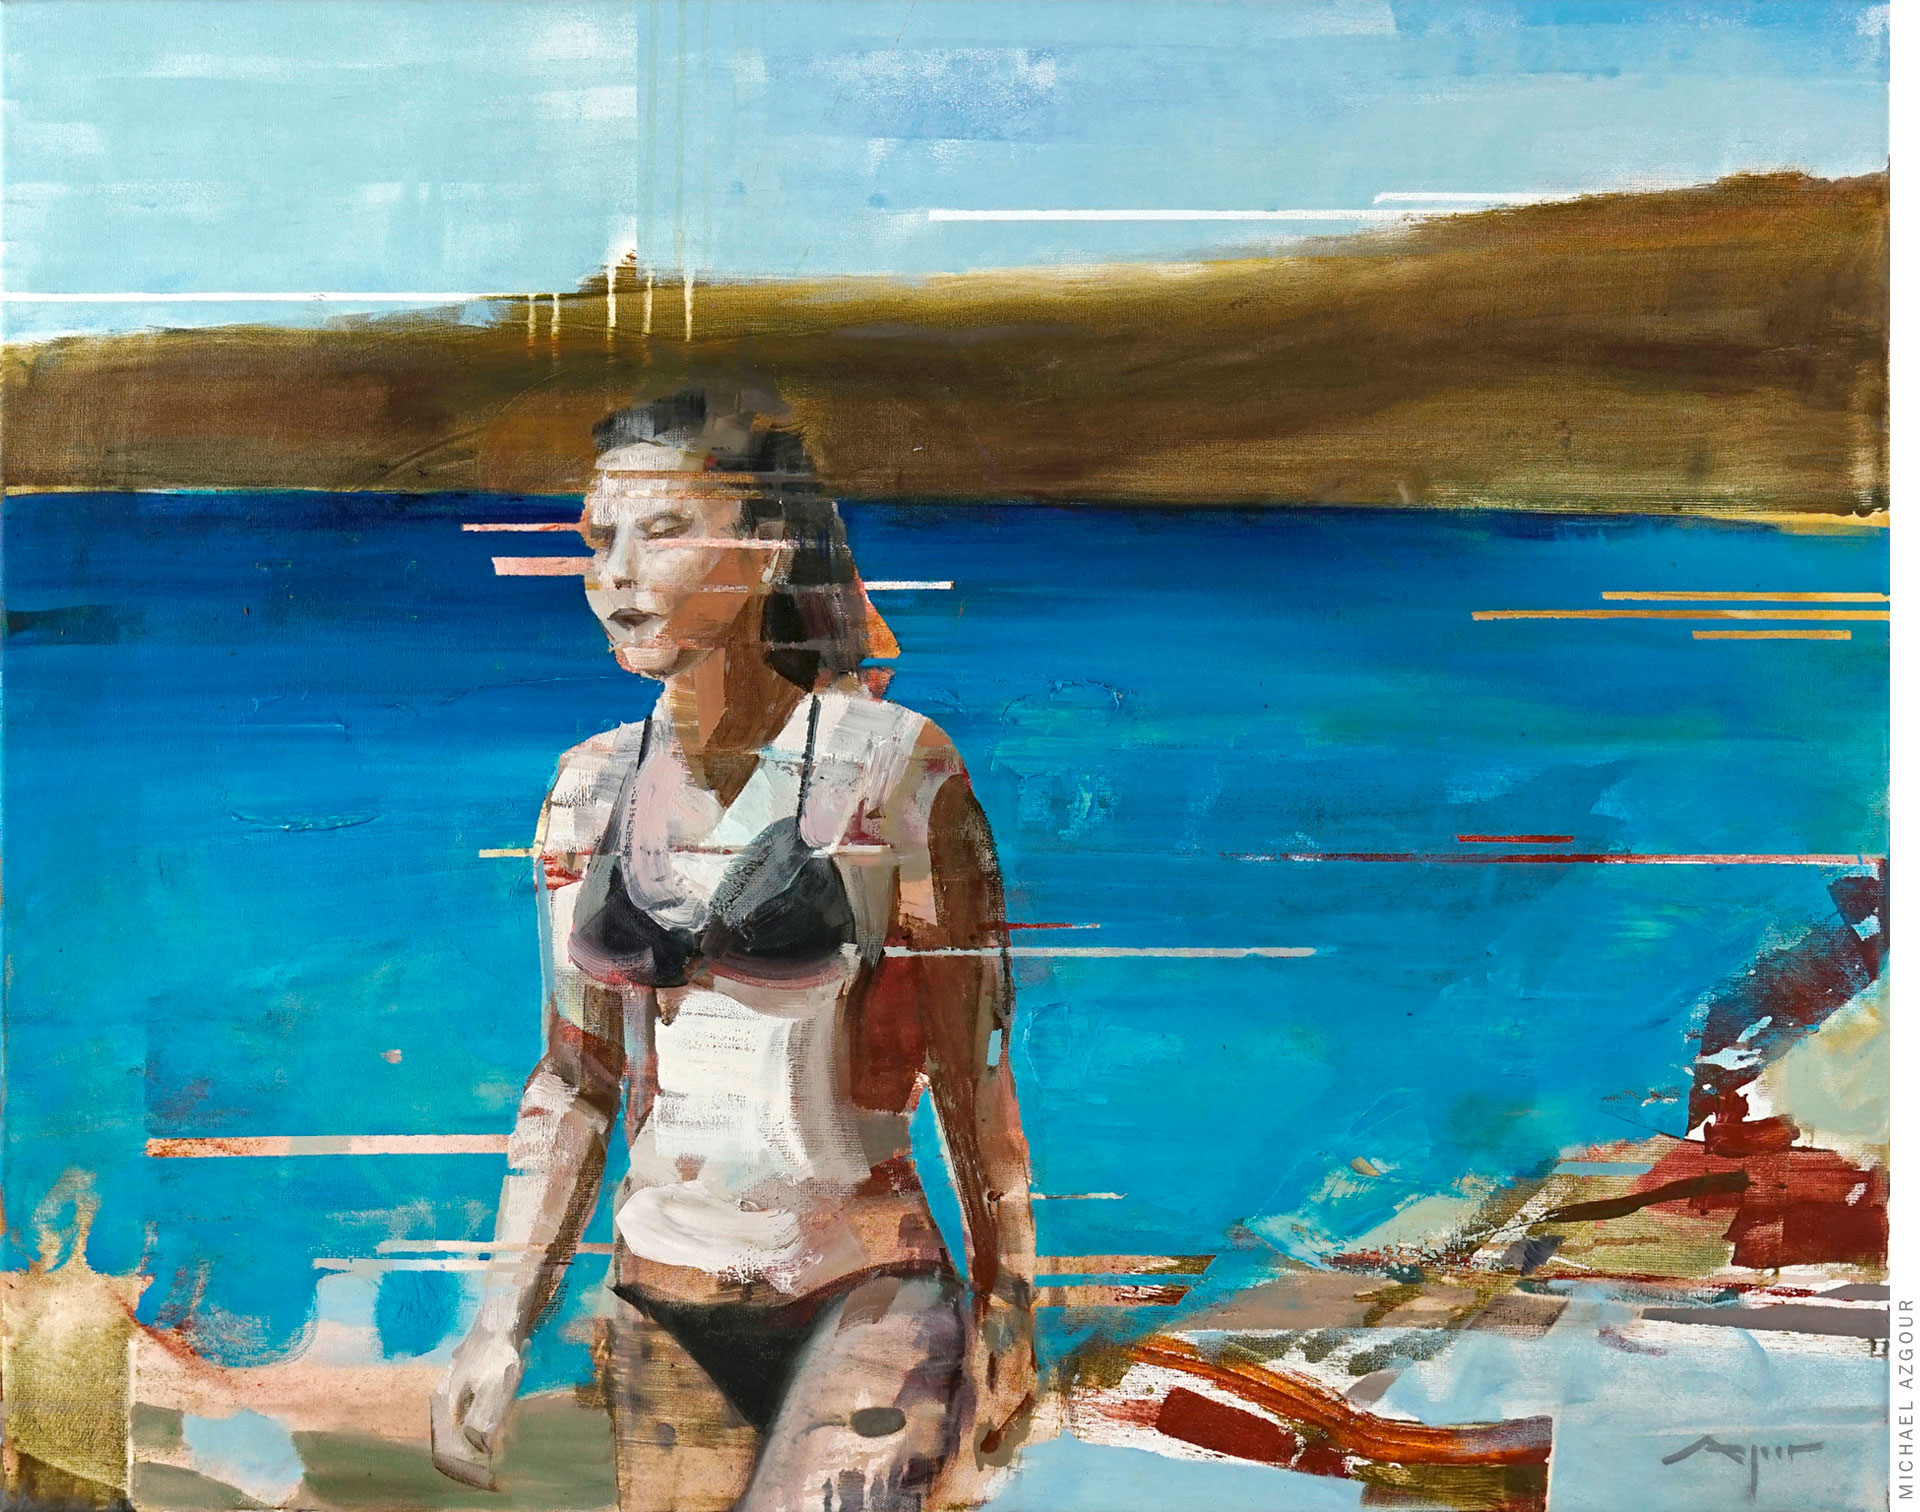 Painting titled Maria depicting a woman in a bikini walking at the beach.